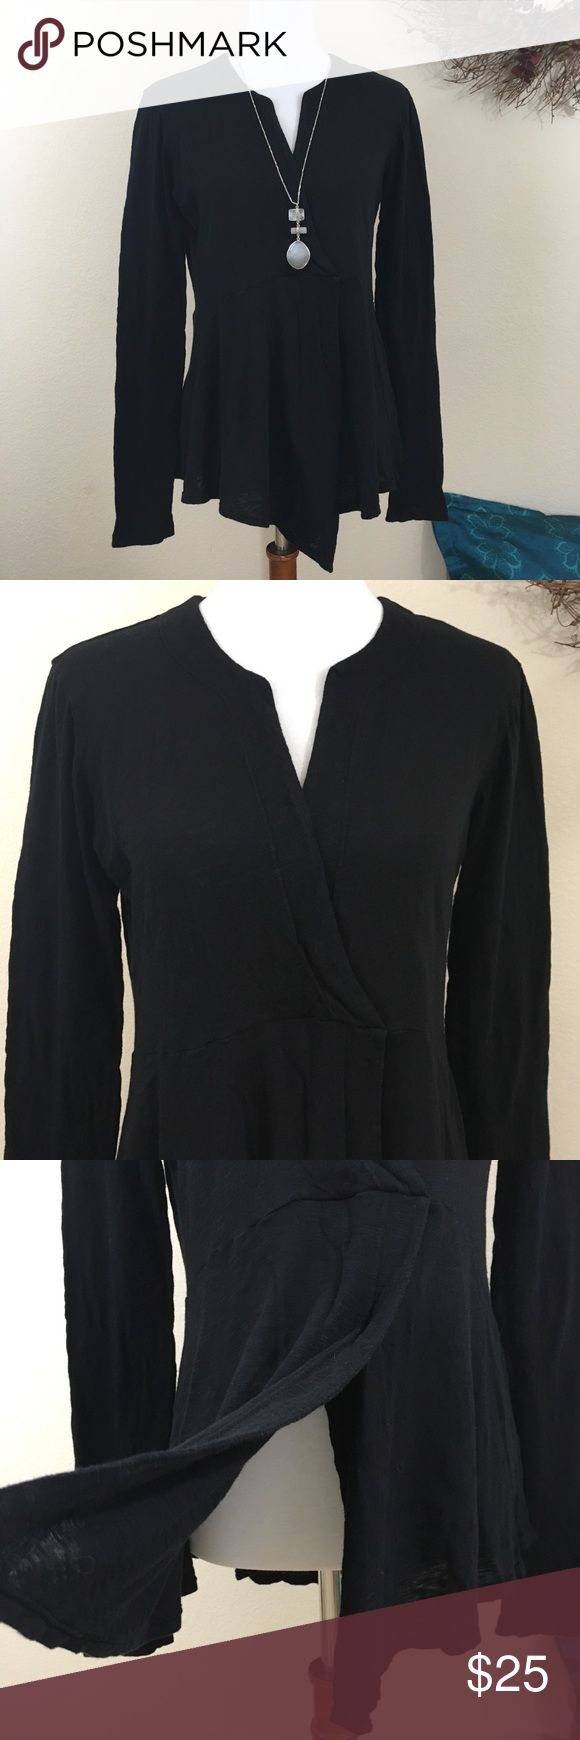 "Anthropologie Left of Center Tunic Top Black long sleeve tunic top with split neck in very good pre-loved condition. Asymmetrical hemline with split front. This lightweight fabric is 100% cotton and is slightly sheer (a camisole or black bra would work). 🌻 Size Small (although oversized). 🌻 Measured bust 18"" lying flat / length approximately 27 to 29"" at longest point Anthropologie Tops Tunics"